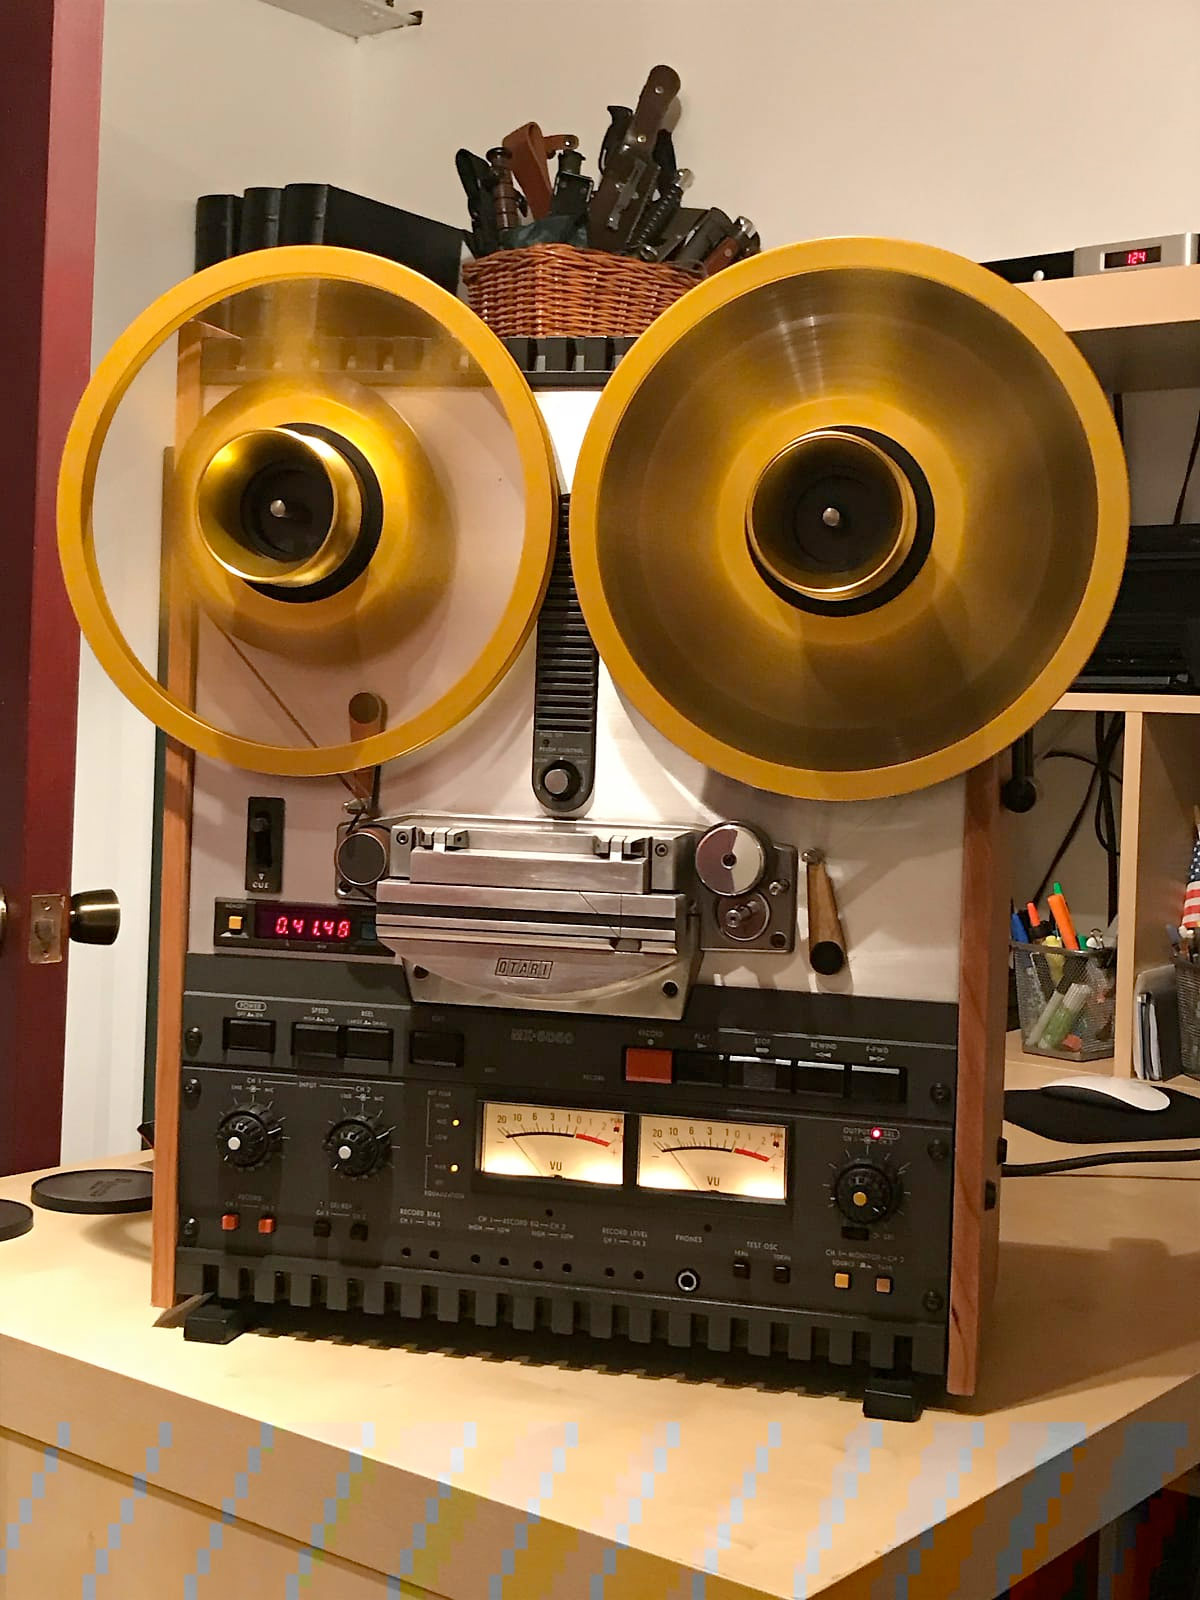 New Otari MX-5050 Bll-2 Customized Reel to Reel image